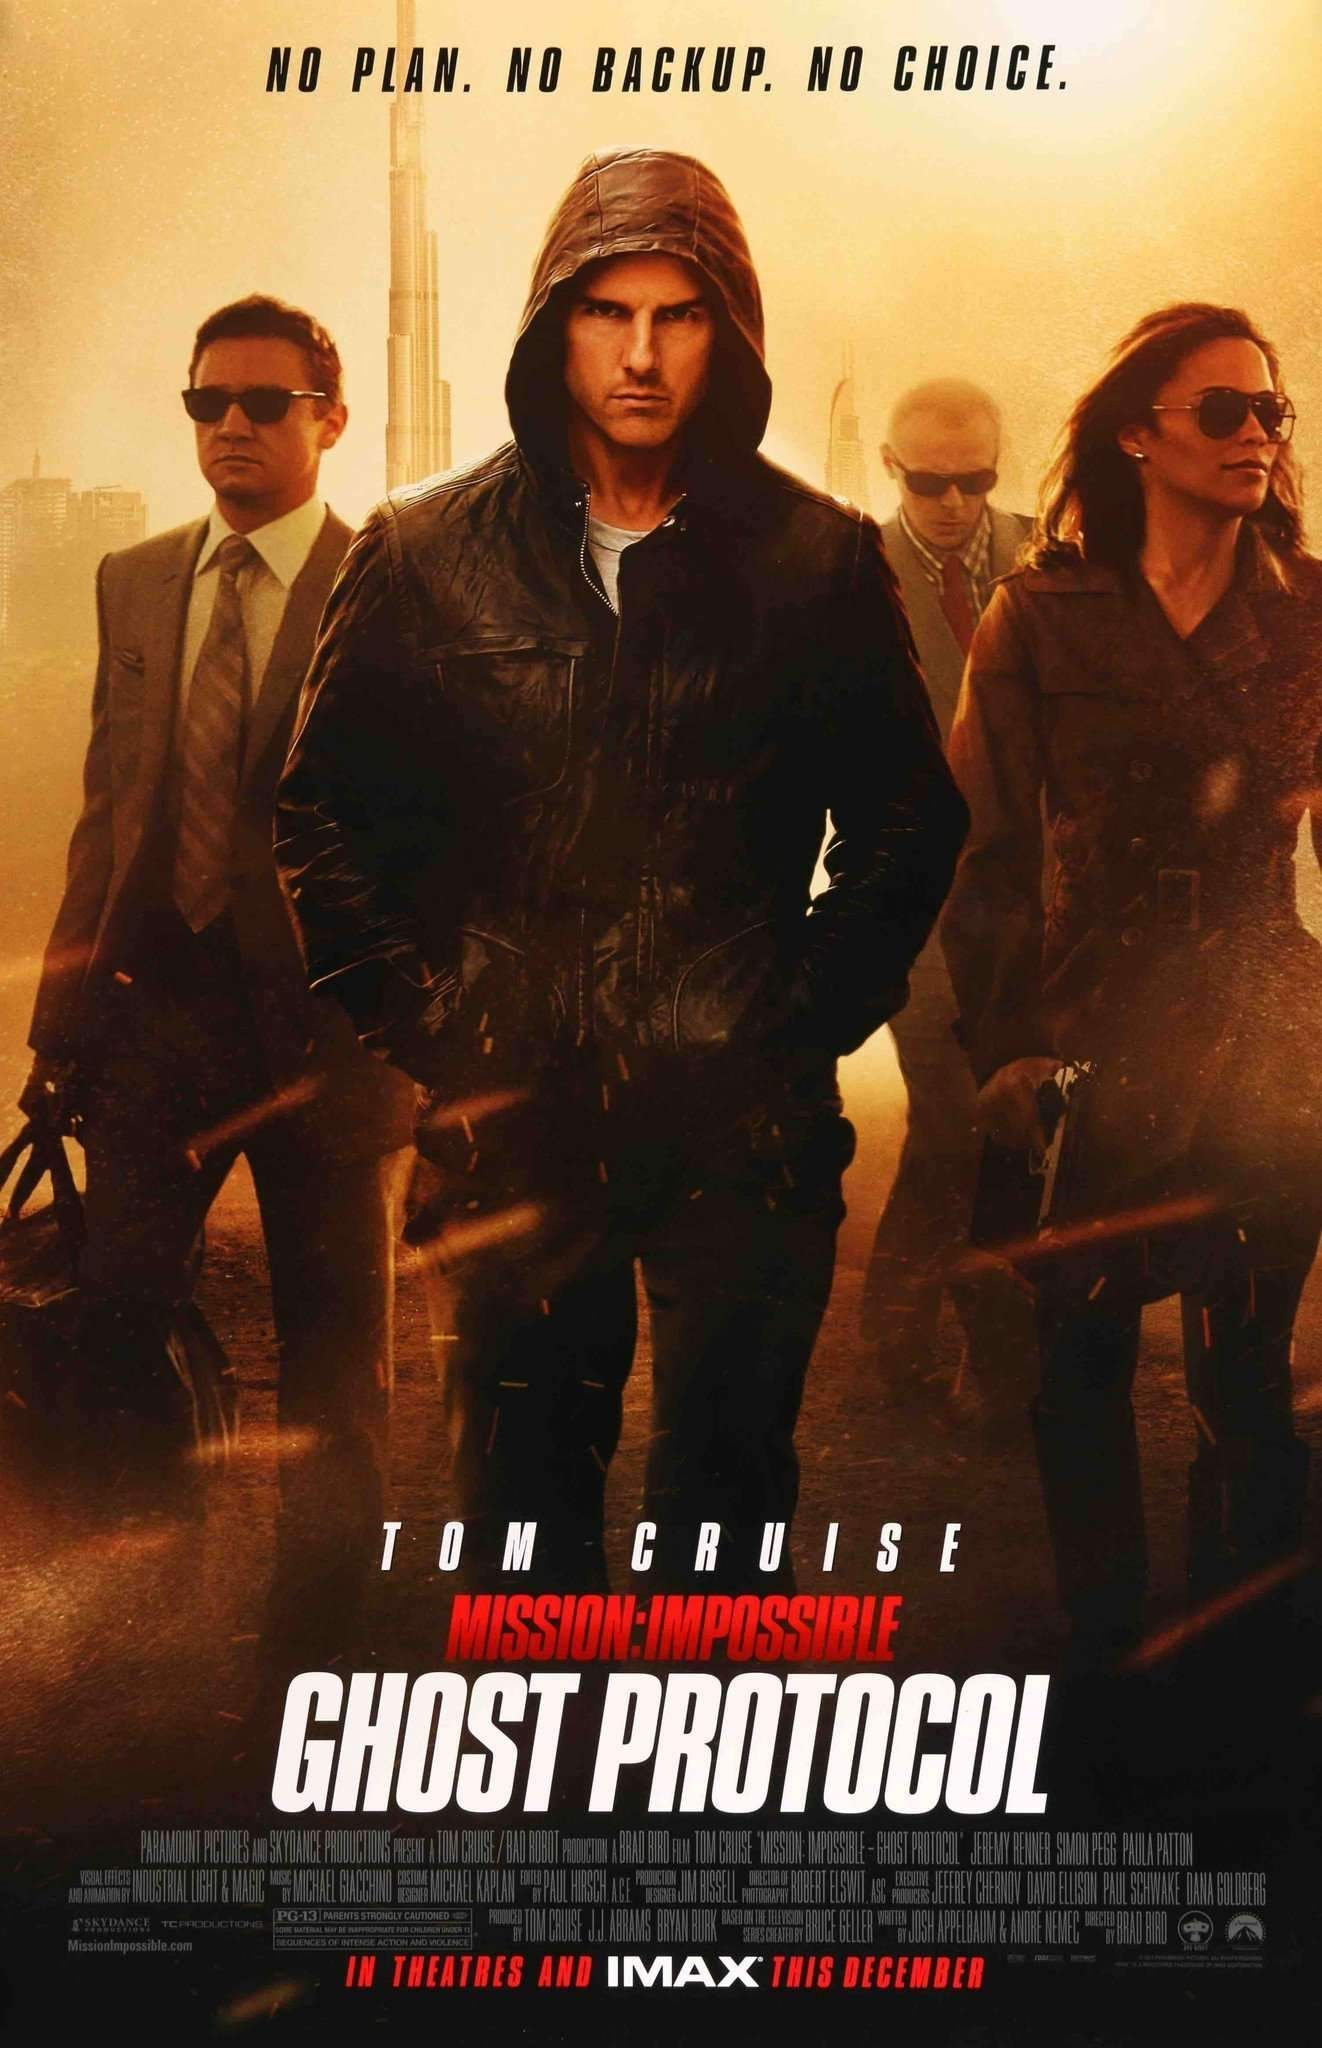 Mission Impossible Ghost Protocol (2011) Ghost protocol